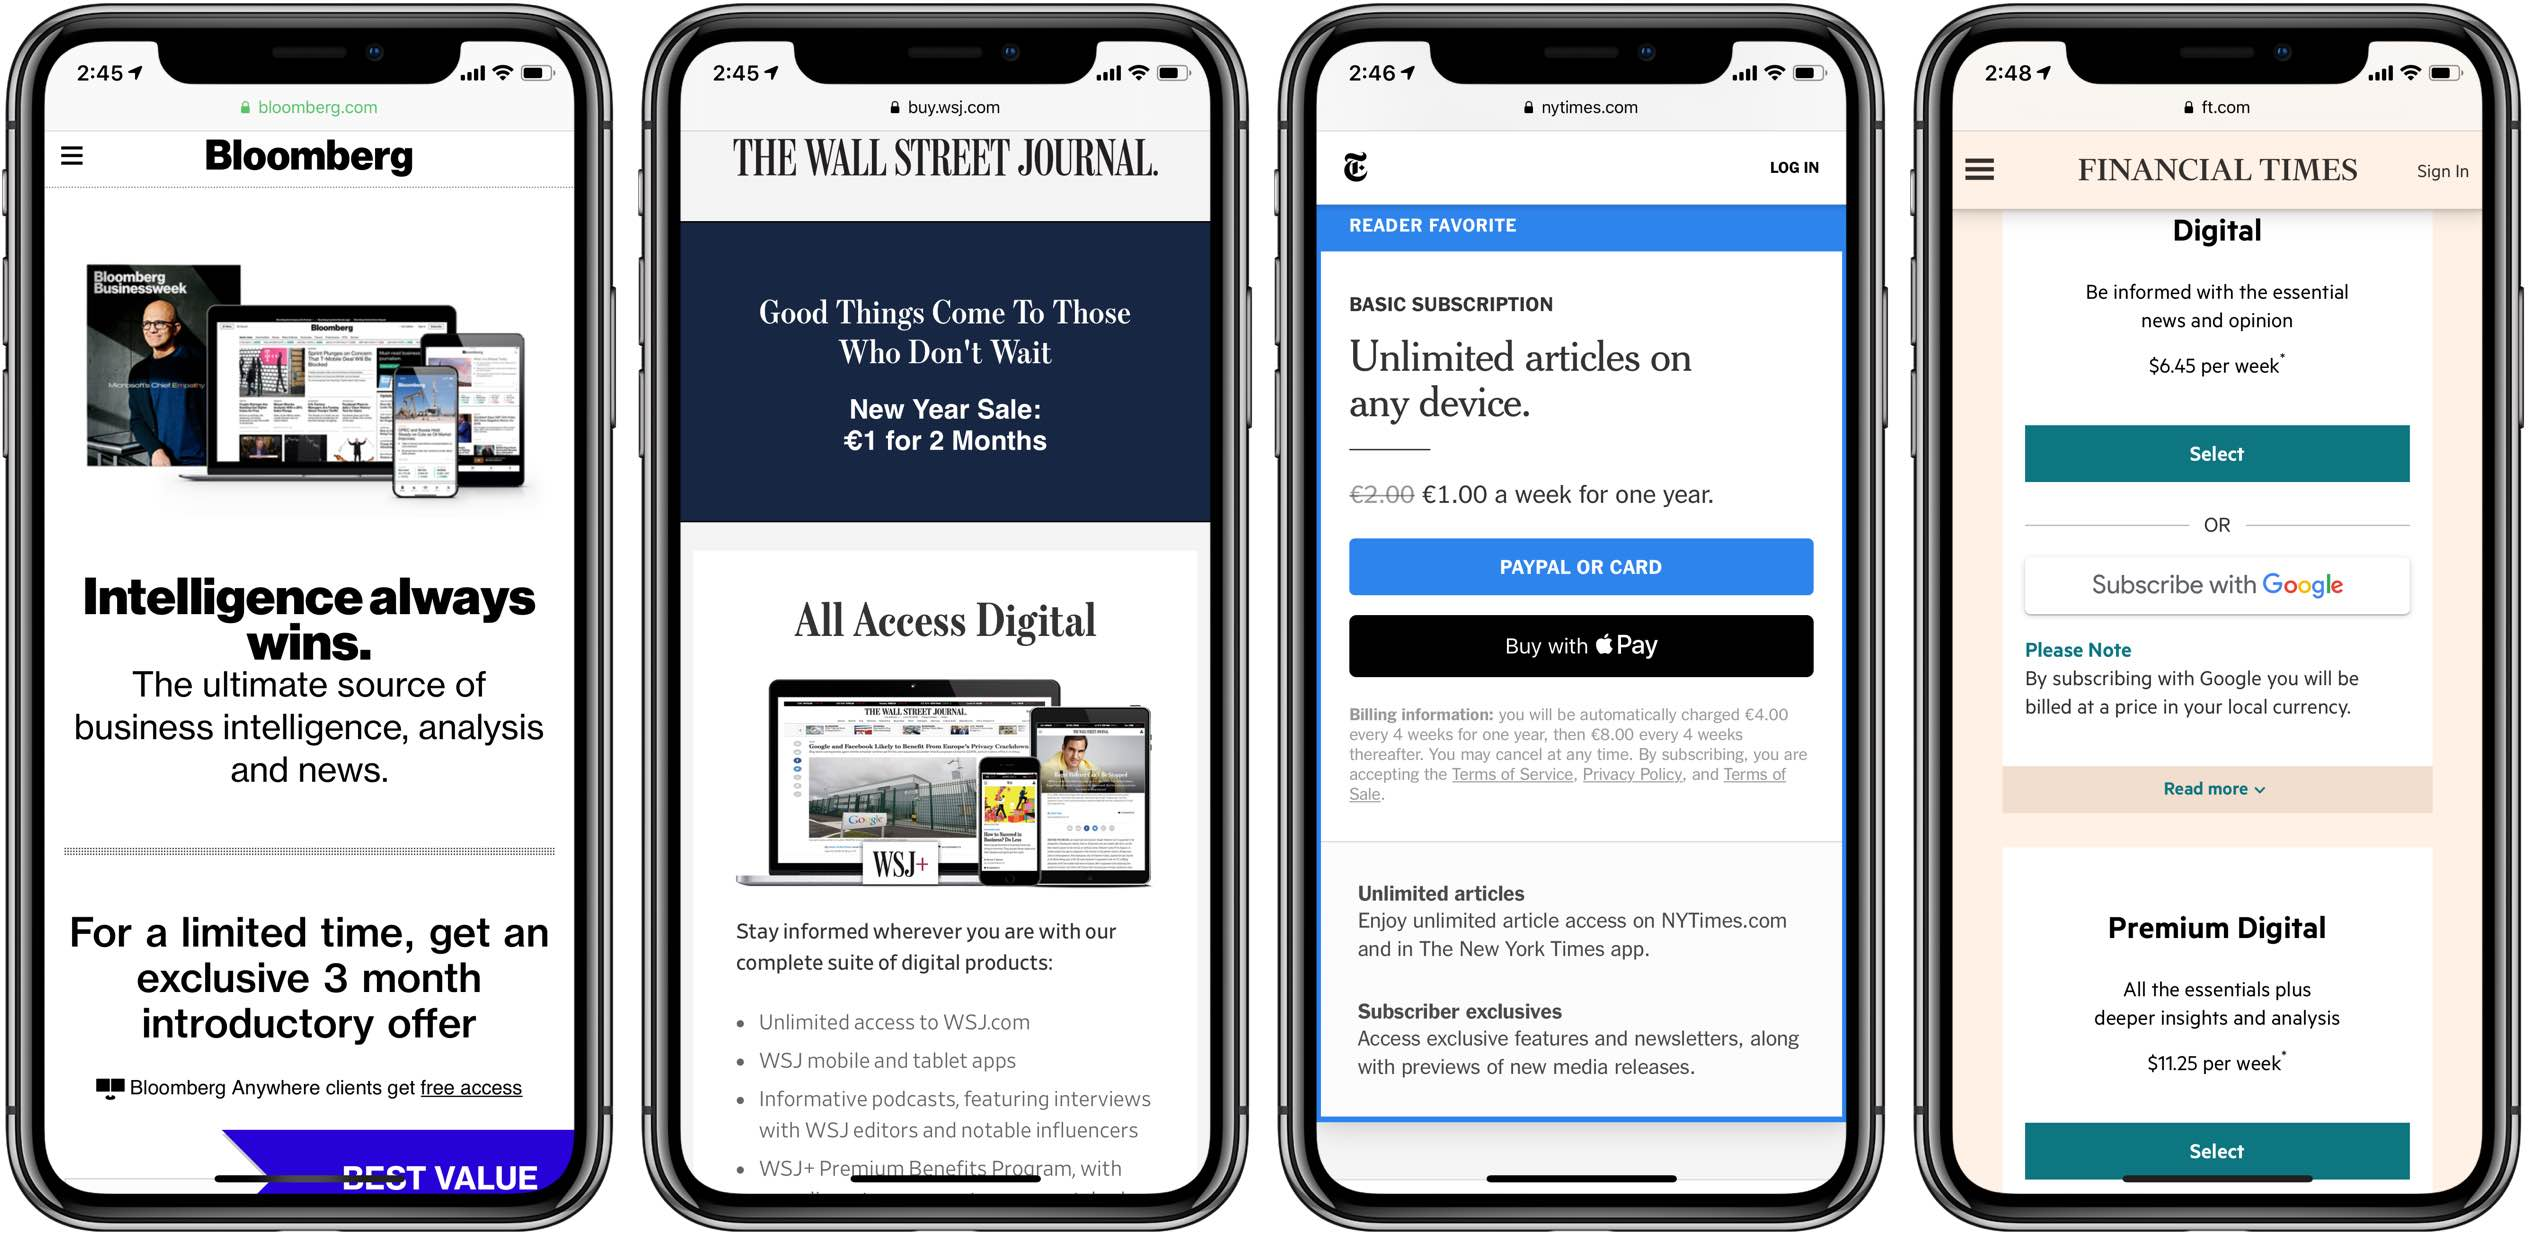 Bypass article paywalls shortcut - a screenshot showing paywalls on the WSJ, NYT, FT and Bloomberg